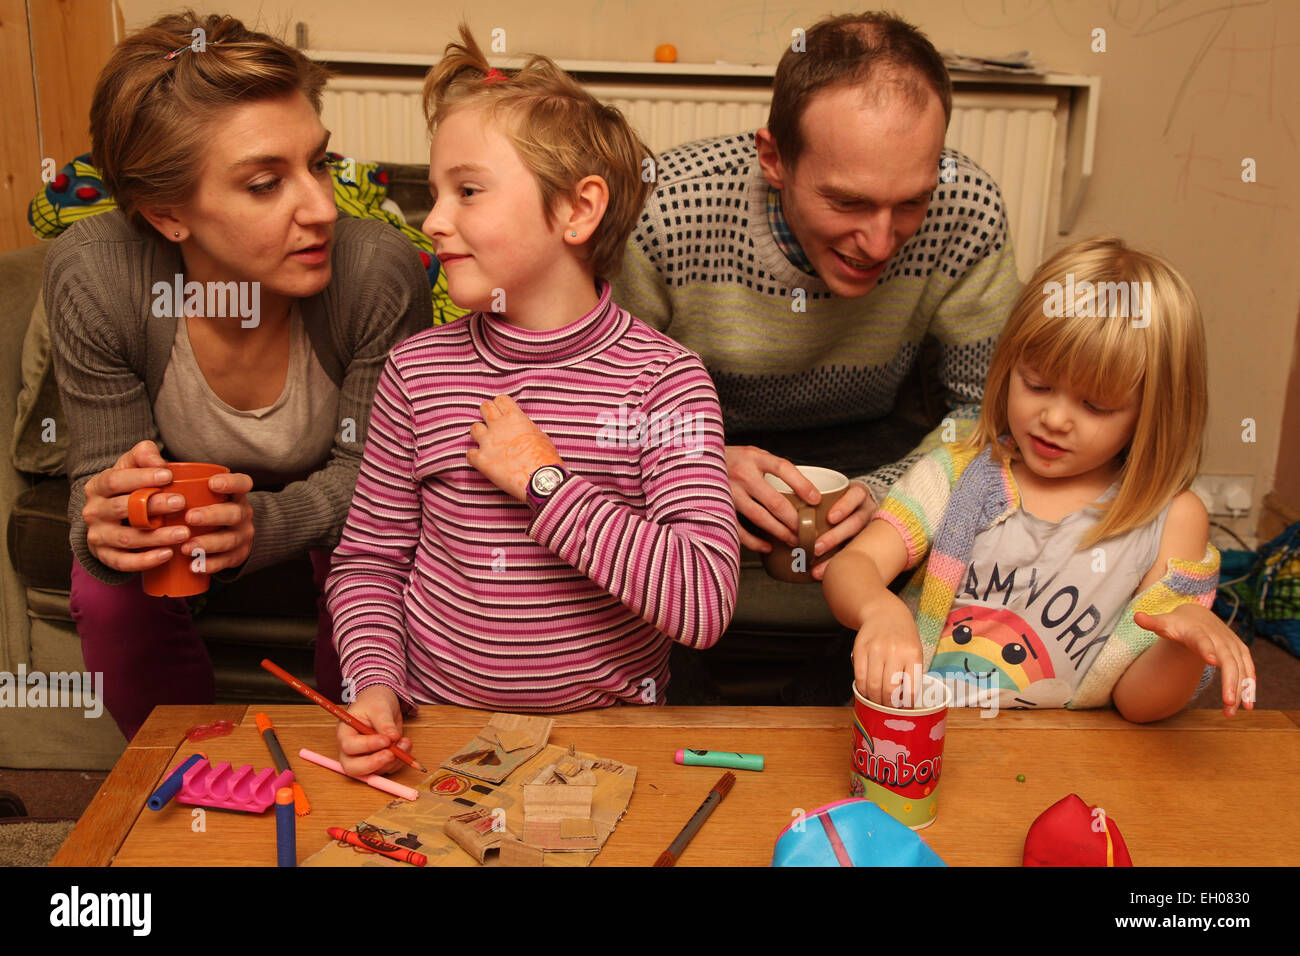 Parents and children crafting - model released Stock Photo